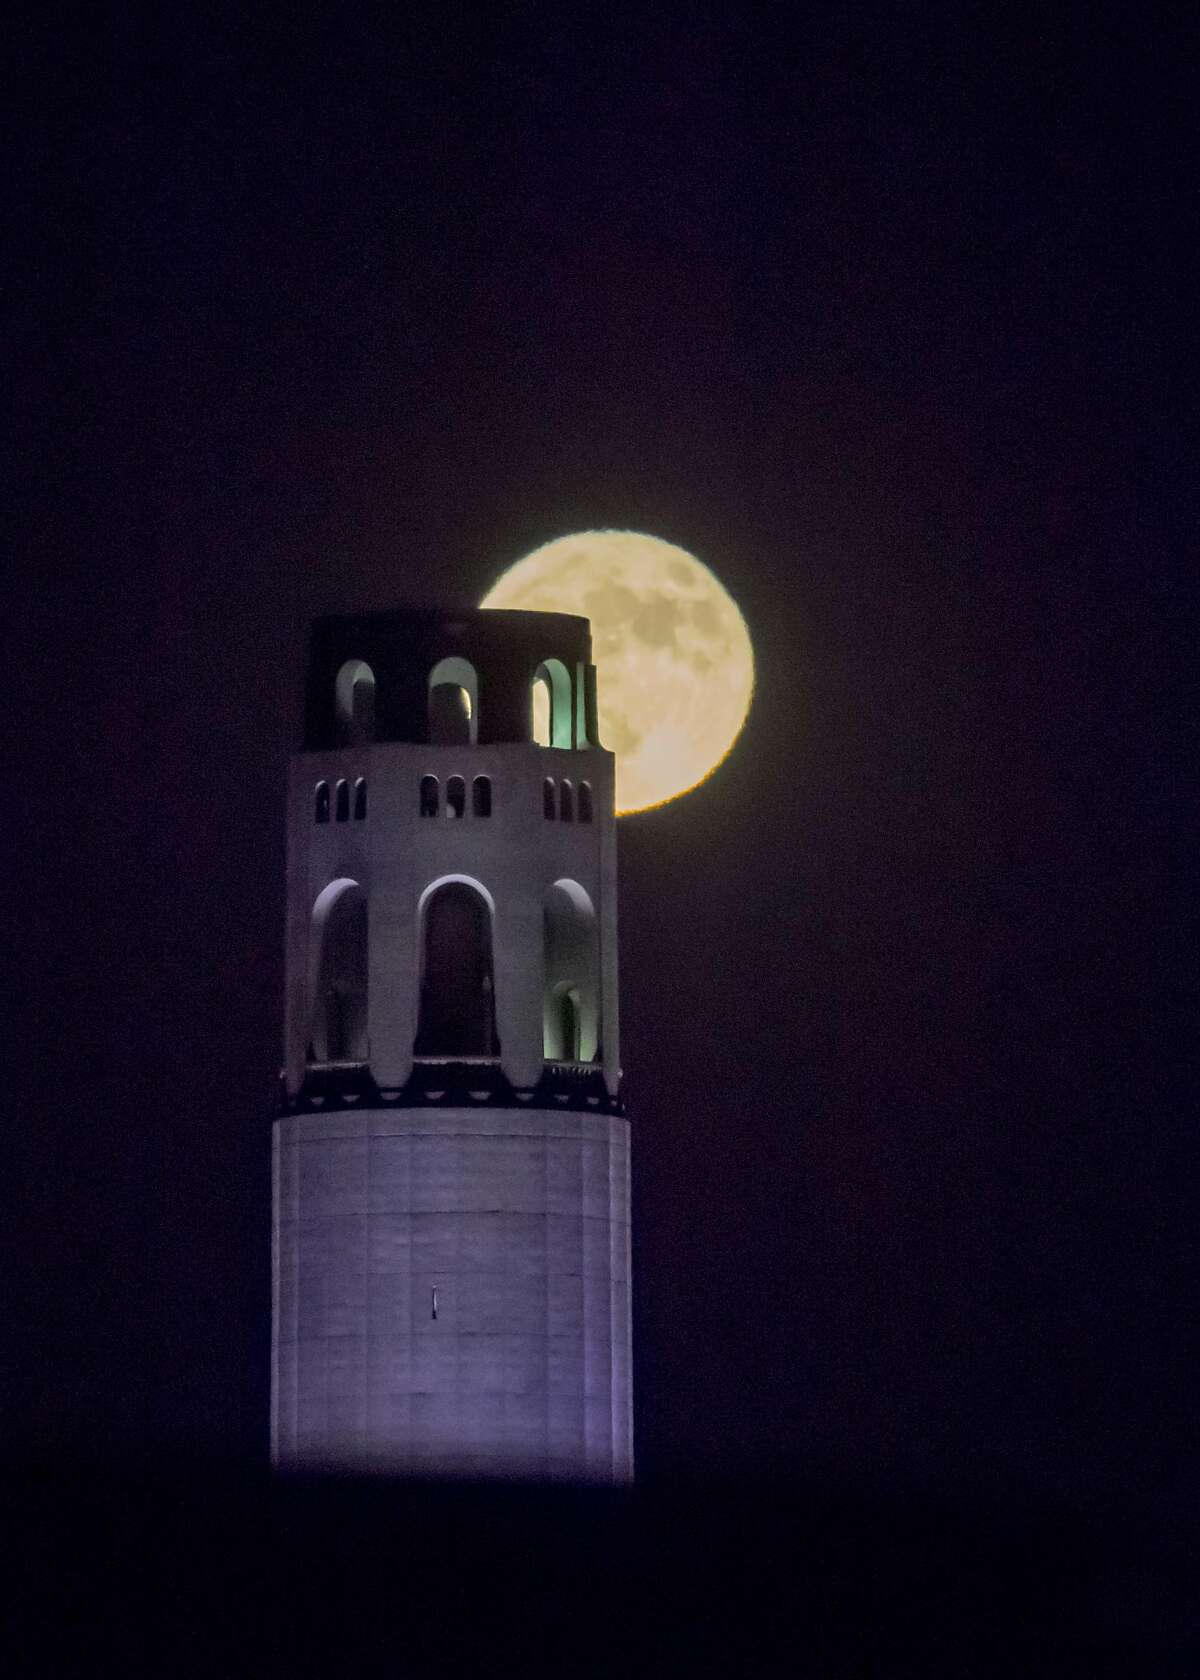 The Halloween Blue Moon, or second full moon of the month, rose behind Coit Tower as seen in San Francisco on Saturday, October 31, 2020. The full moon was the first day of Halloween to be visible in most time zones on Earth since 1944, and they will not happen again until 2039.